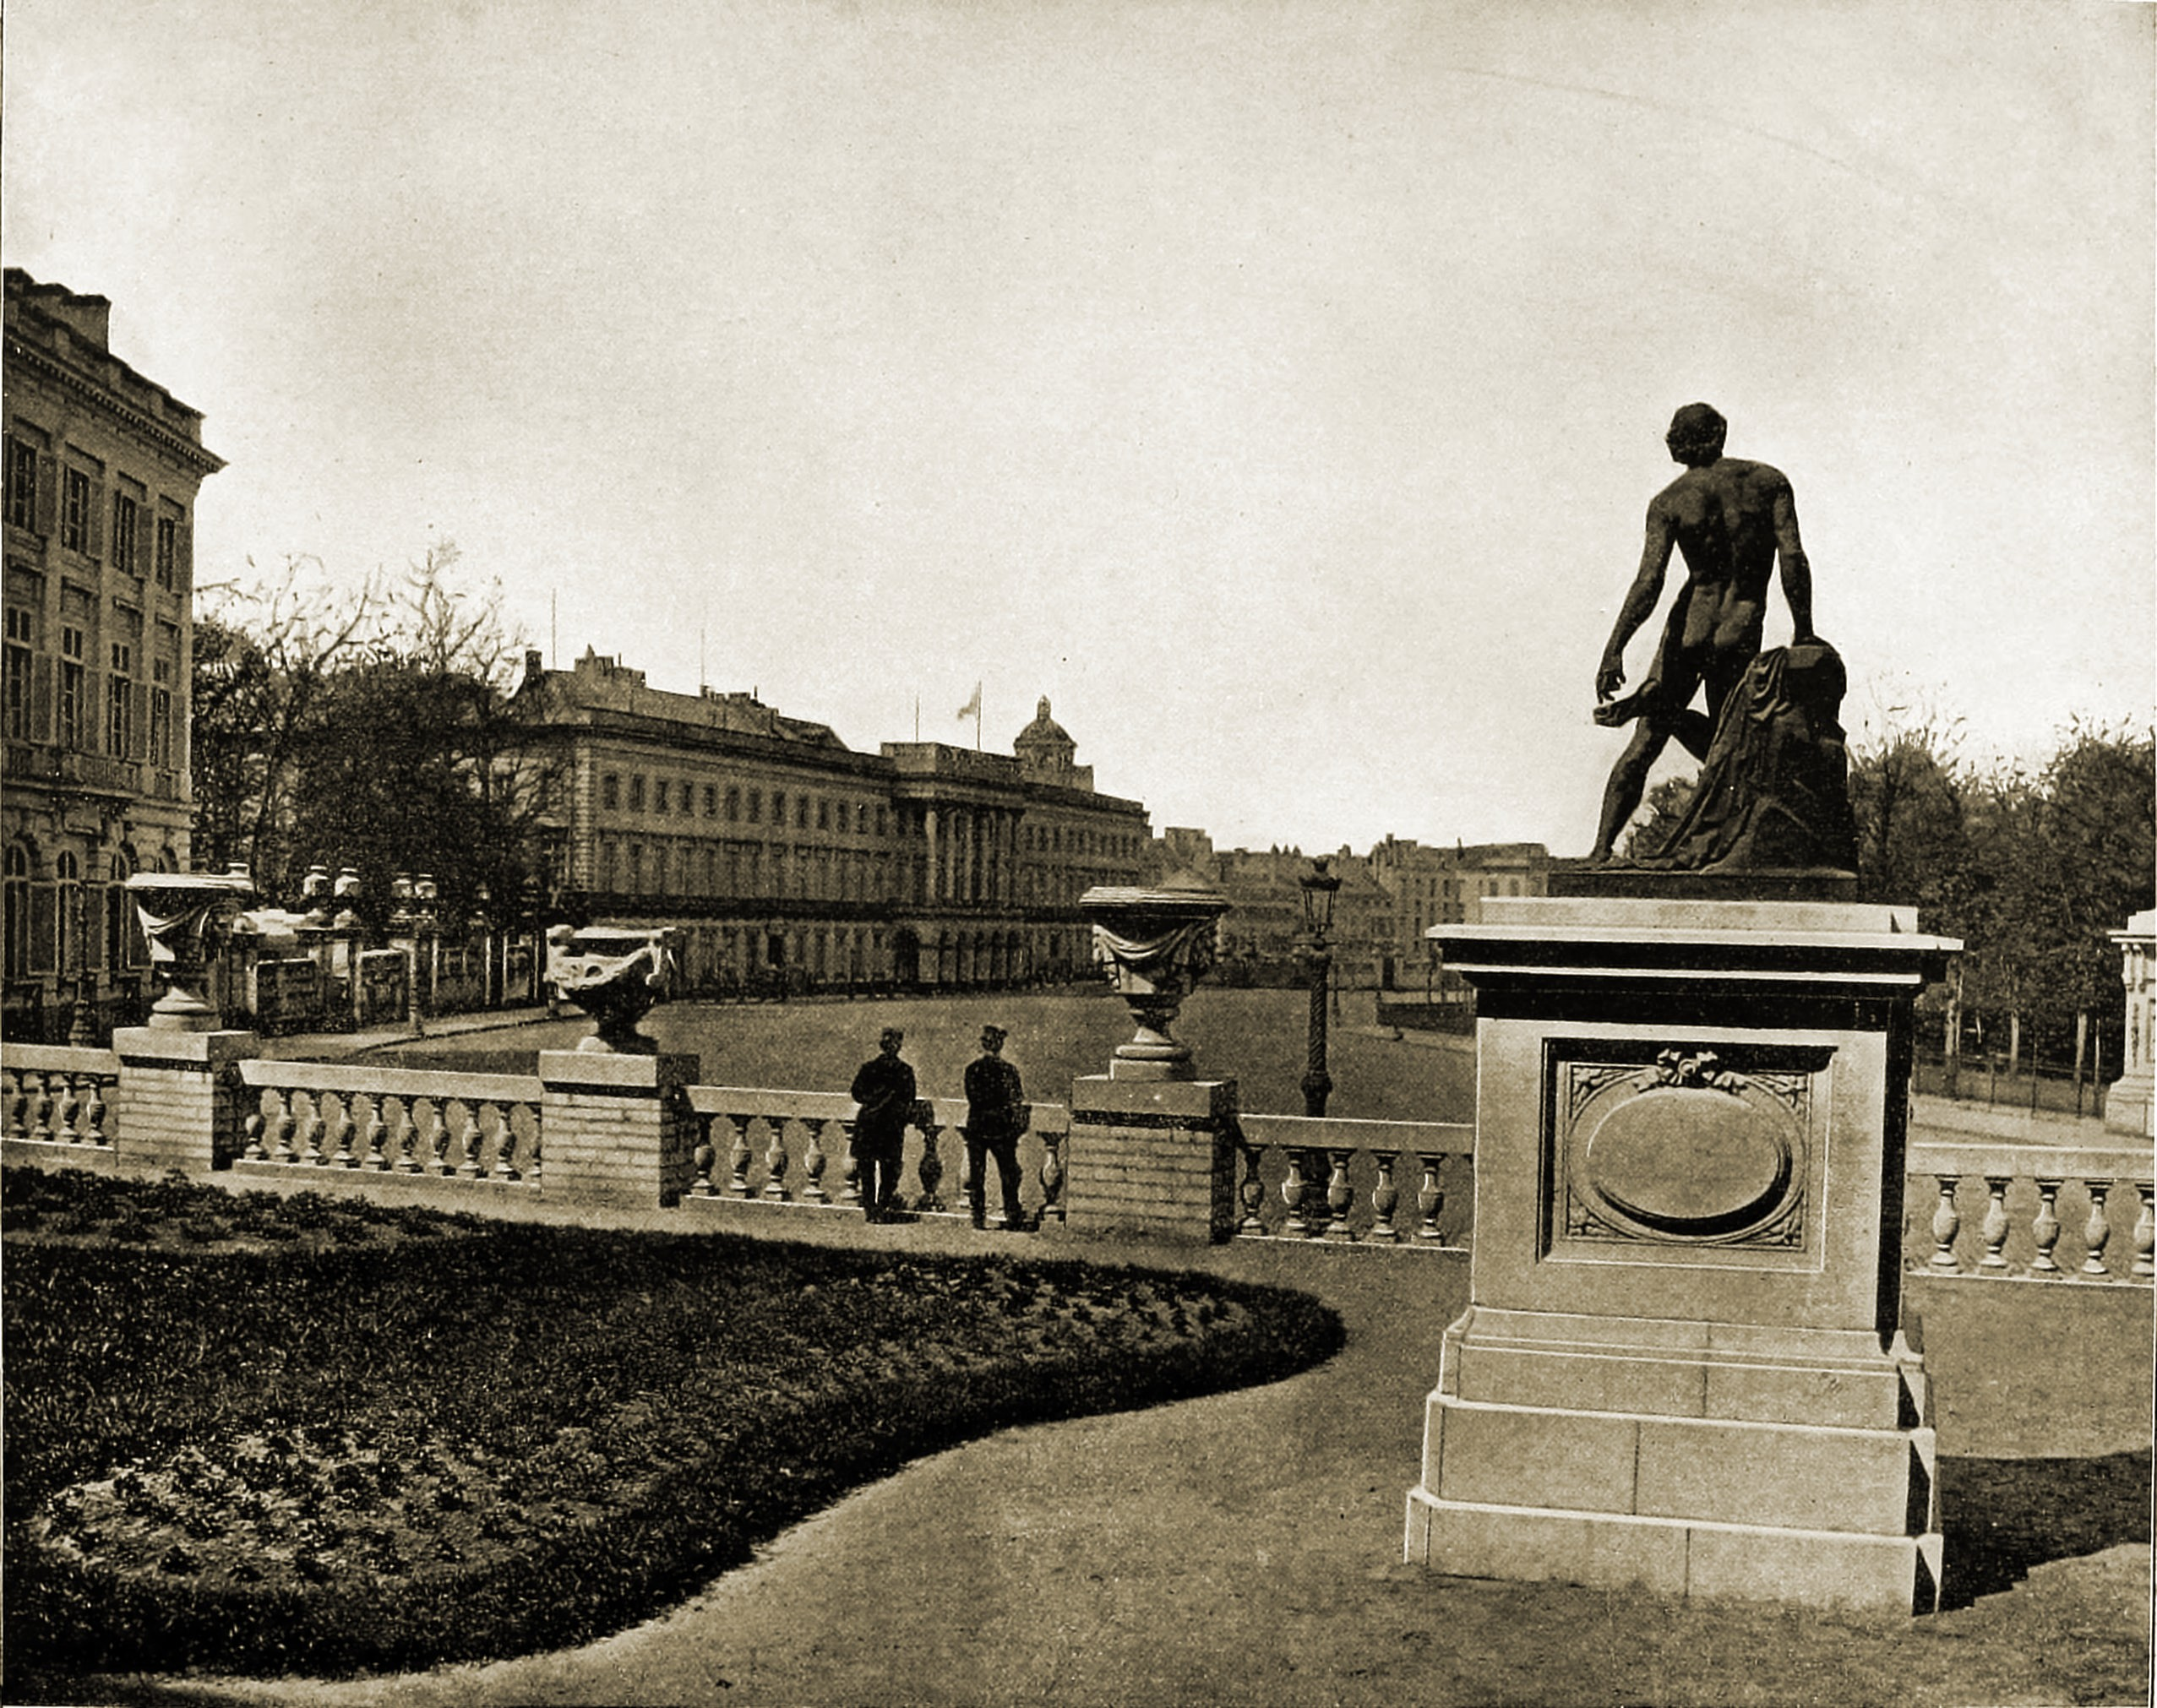 The Royal Palace Brussels Belgium about 1892